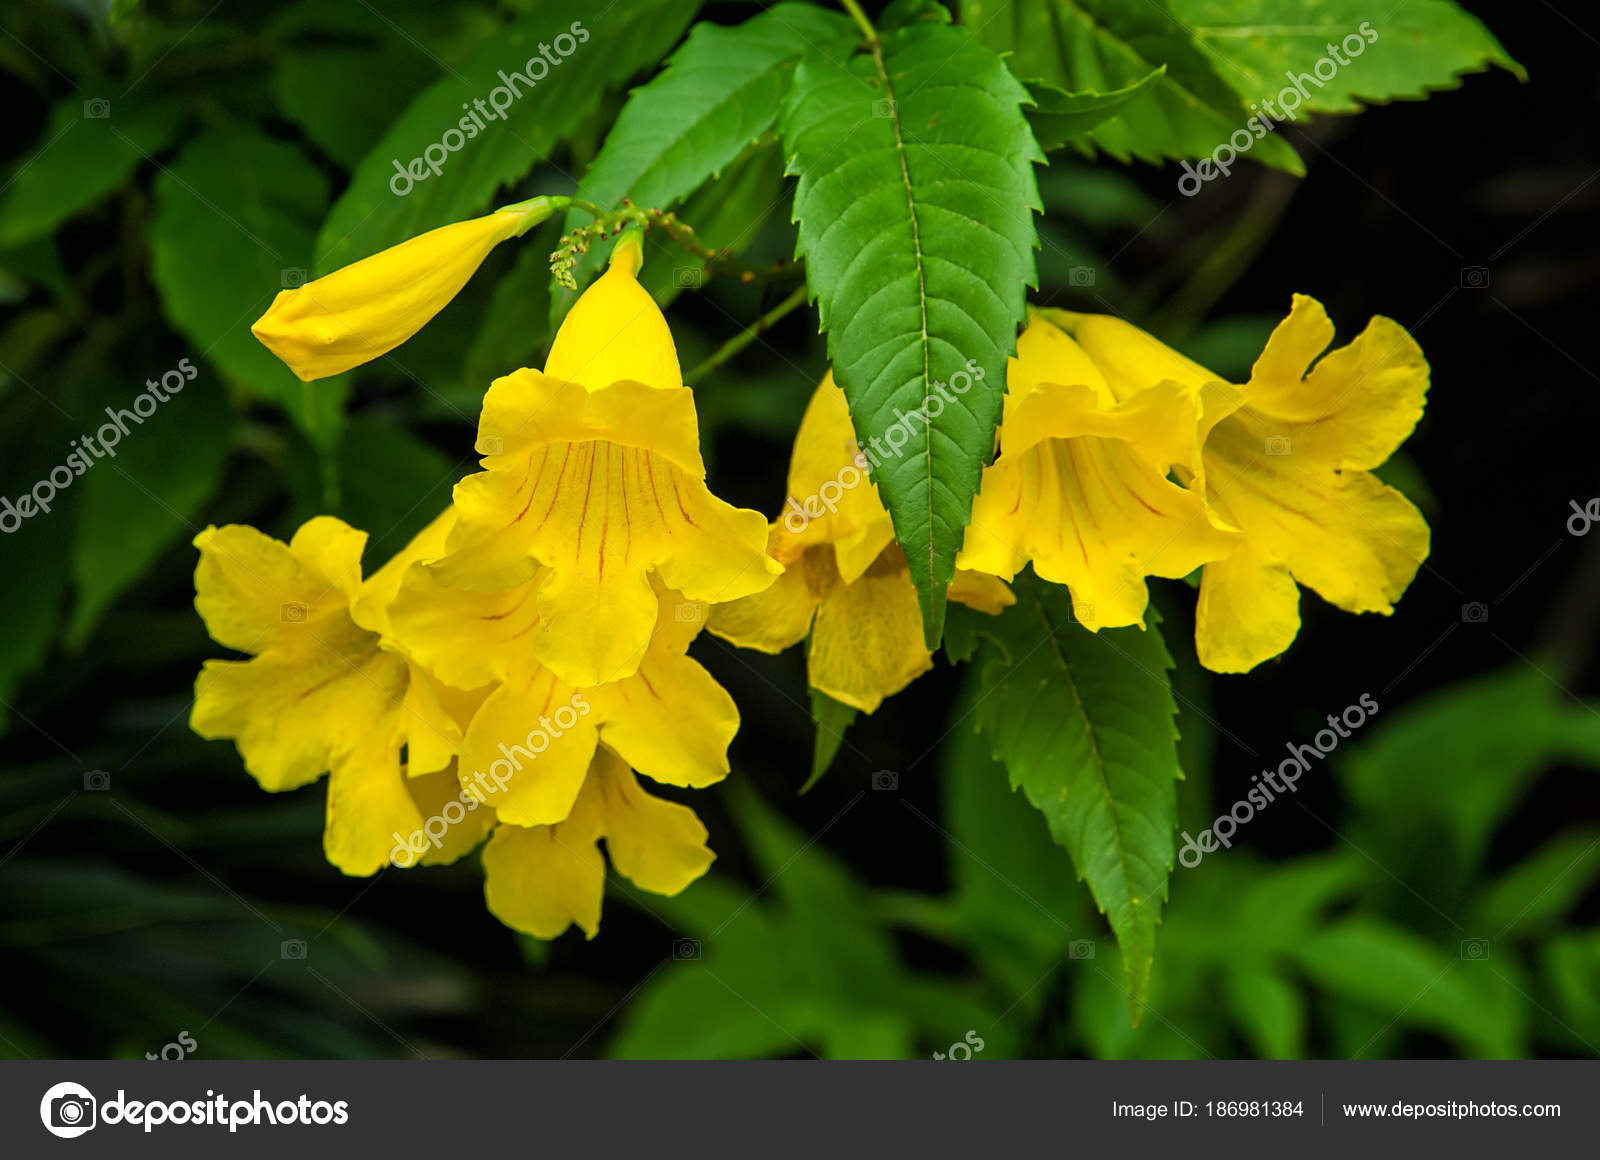 Yellow elder yellow bells or trumpet vine flowers tecoma stans yellow elder yellow bells or trumpet vine flowers tecoma stans stock photo mightylinksfo